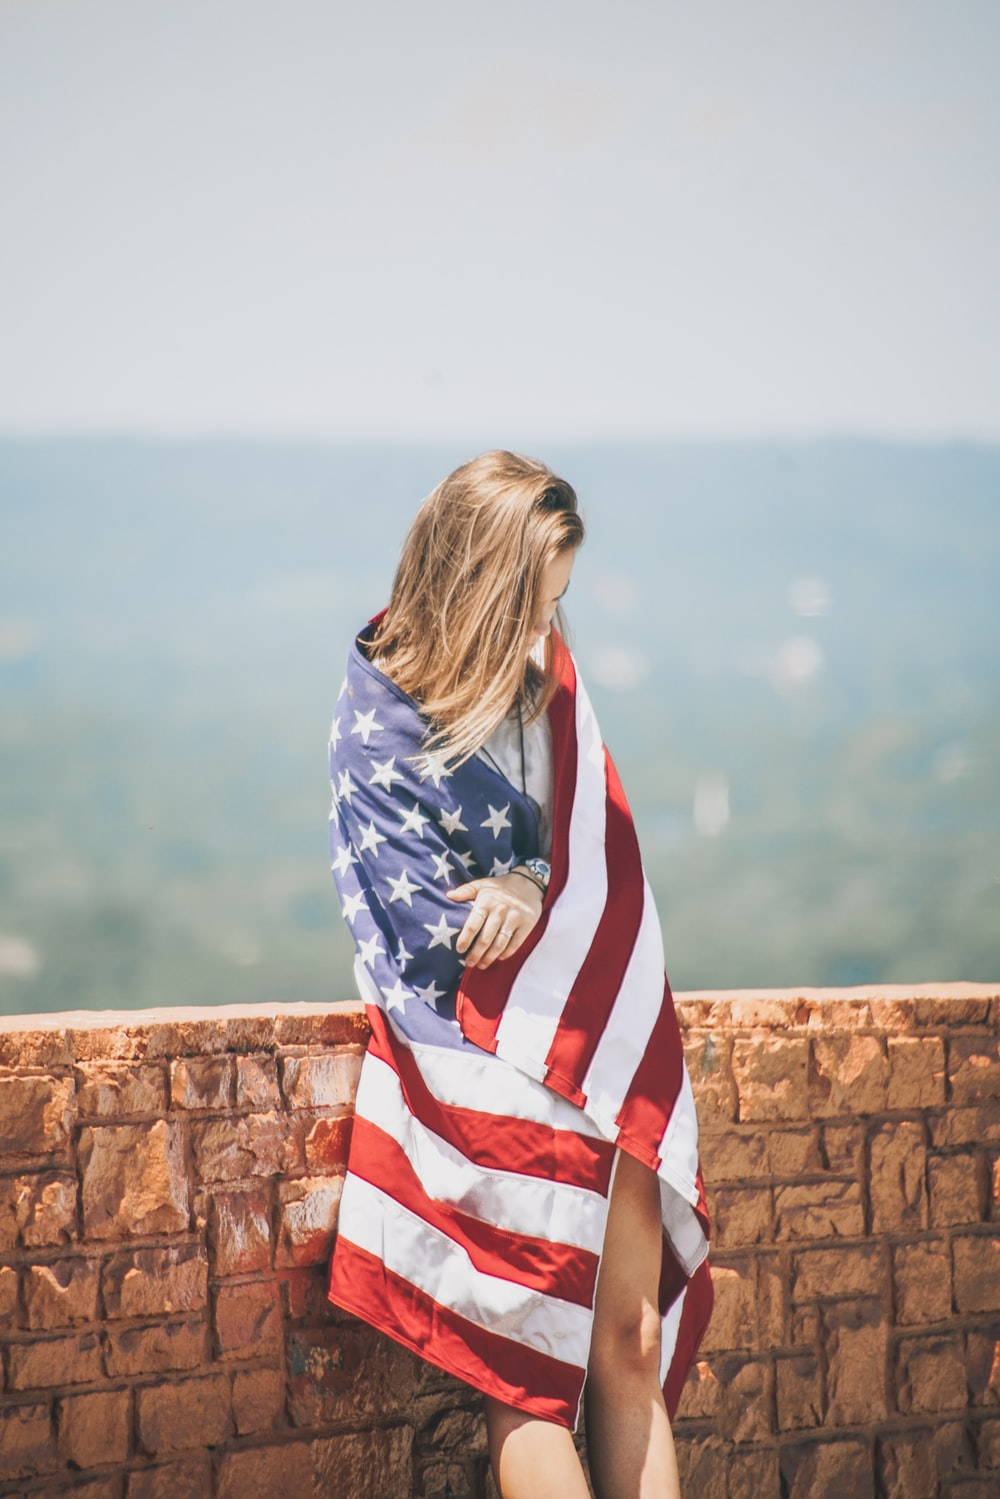 woman standing leaning on brick wall wrapping body with U.S. flag near body of water